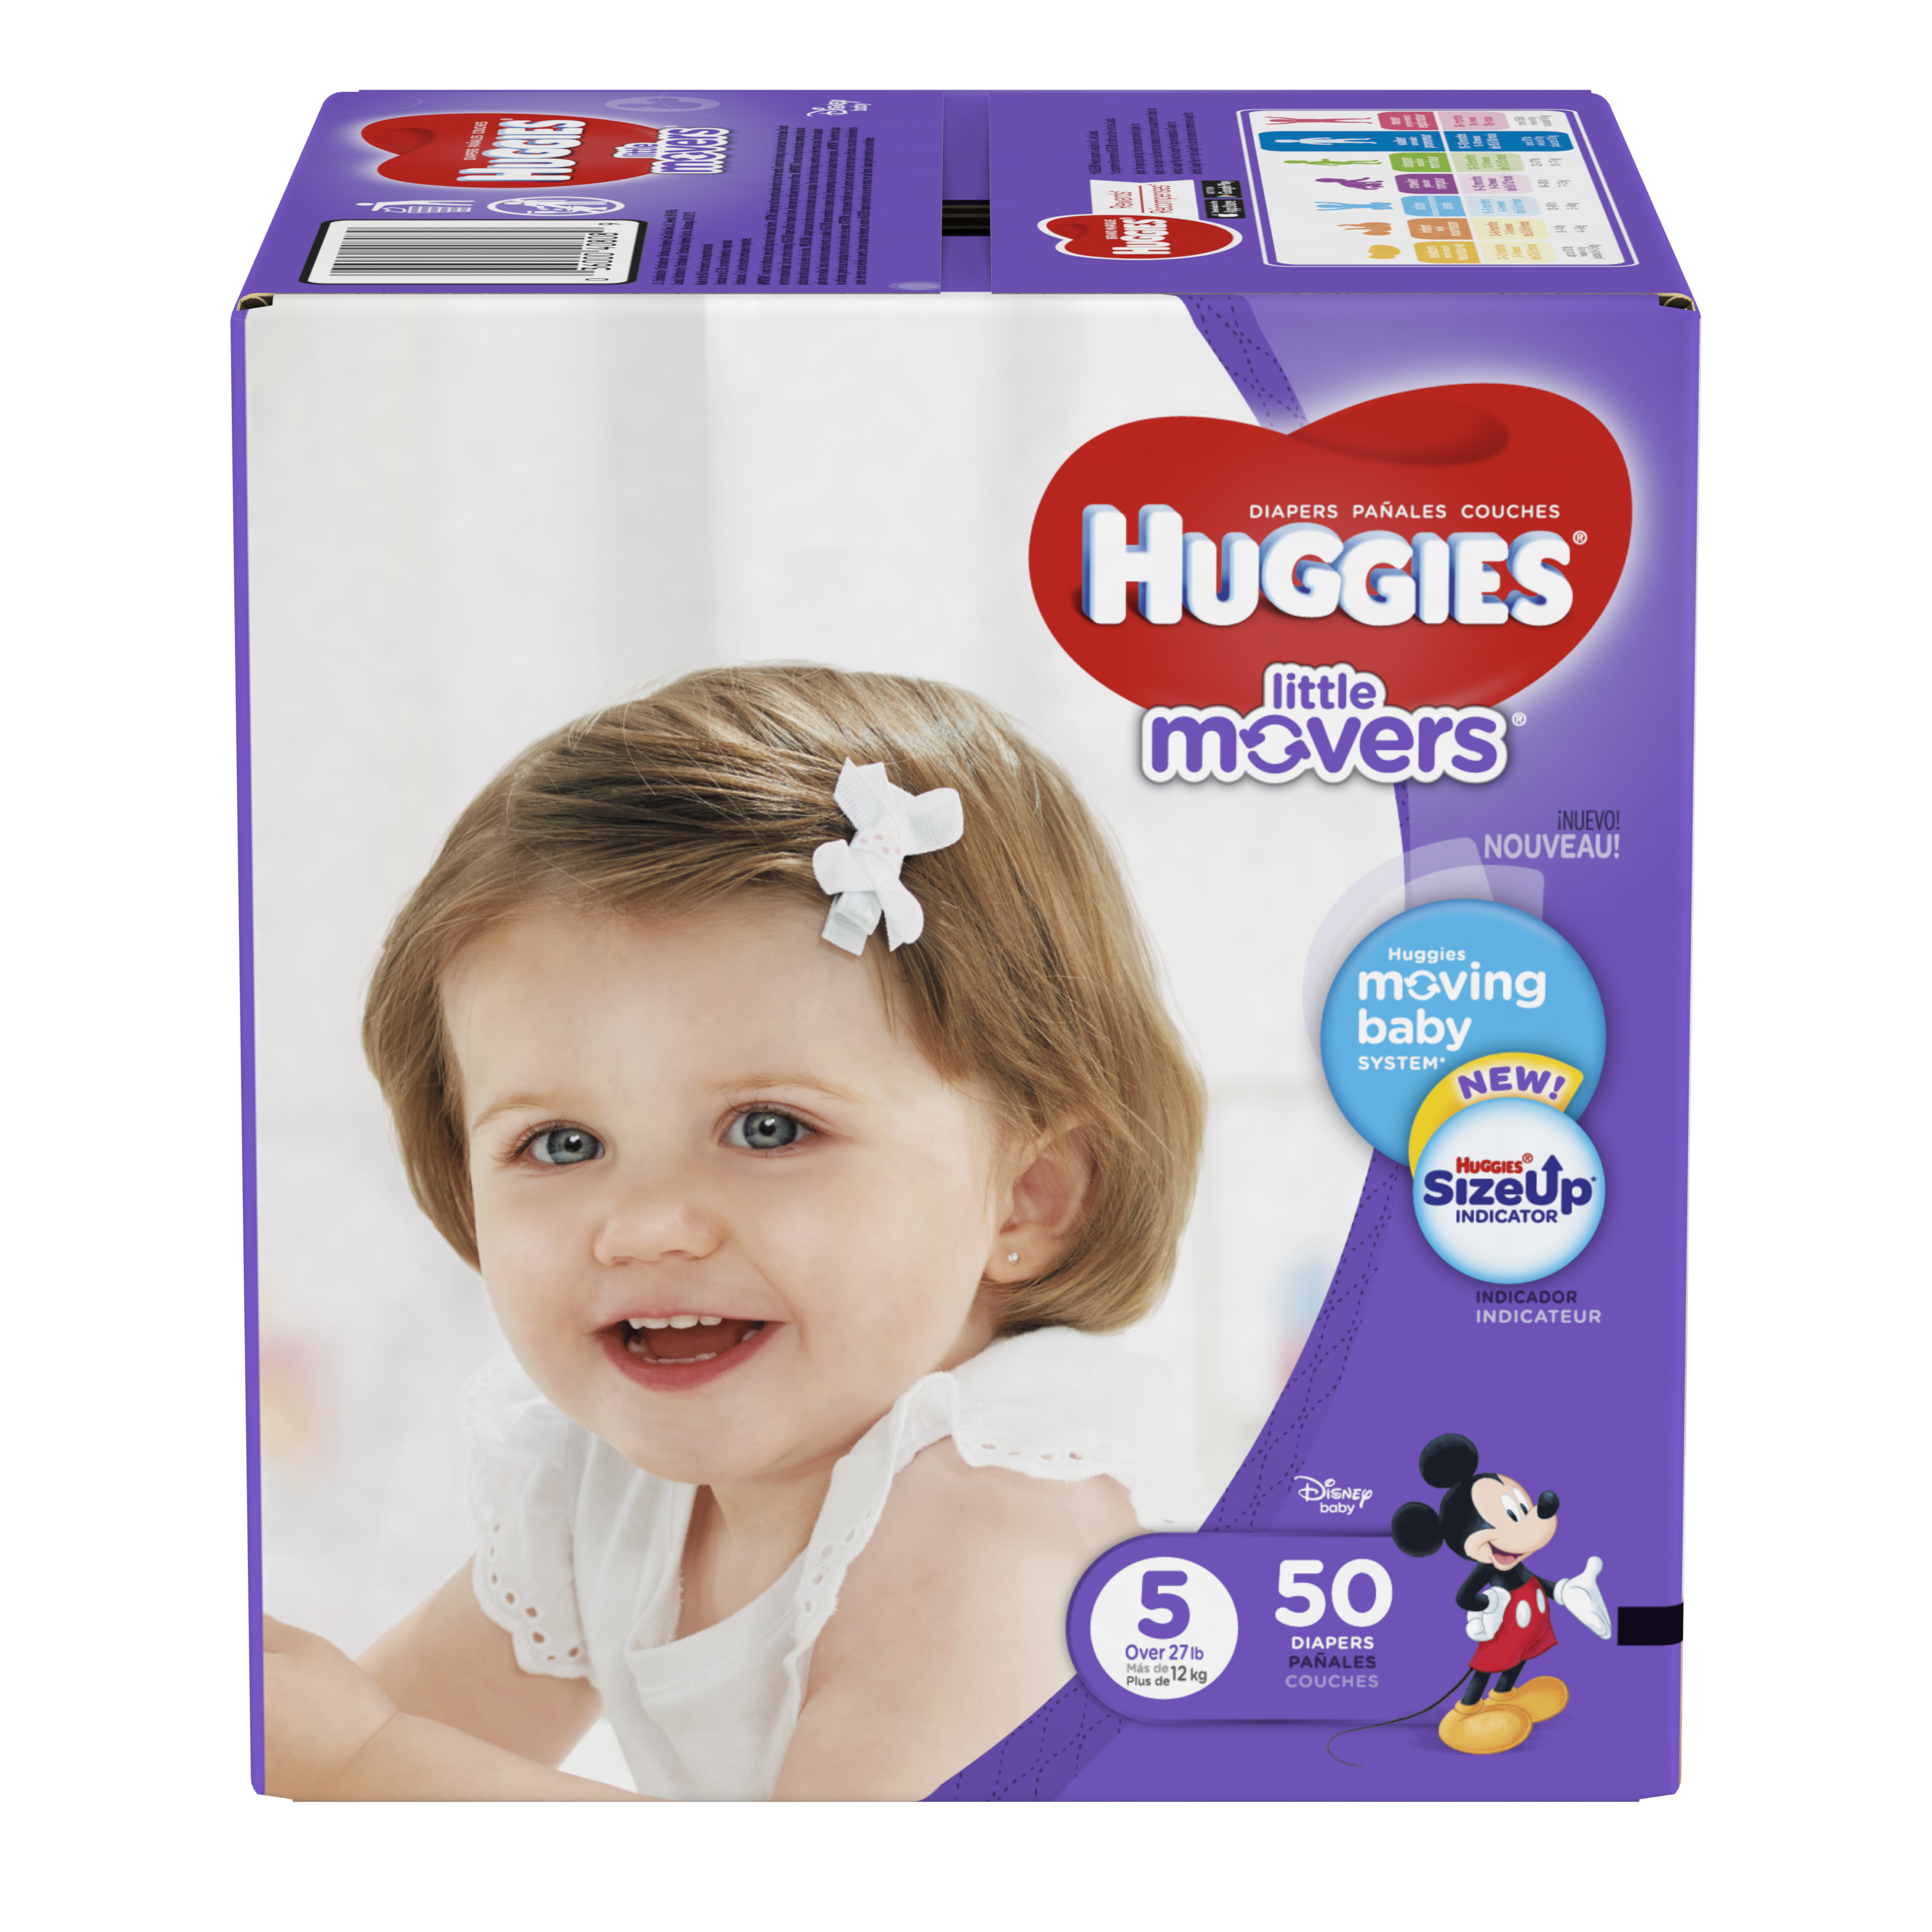 HUGGIES Little Movers Diapers, Size 5, 50 Diapers